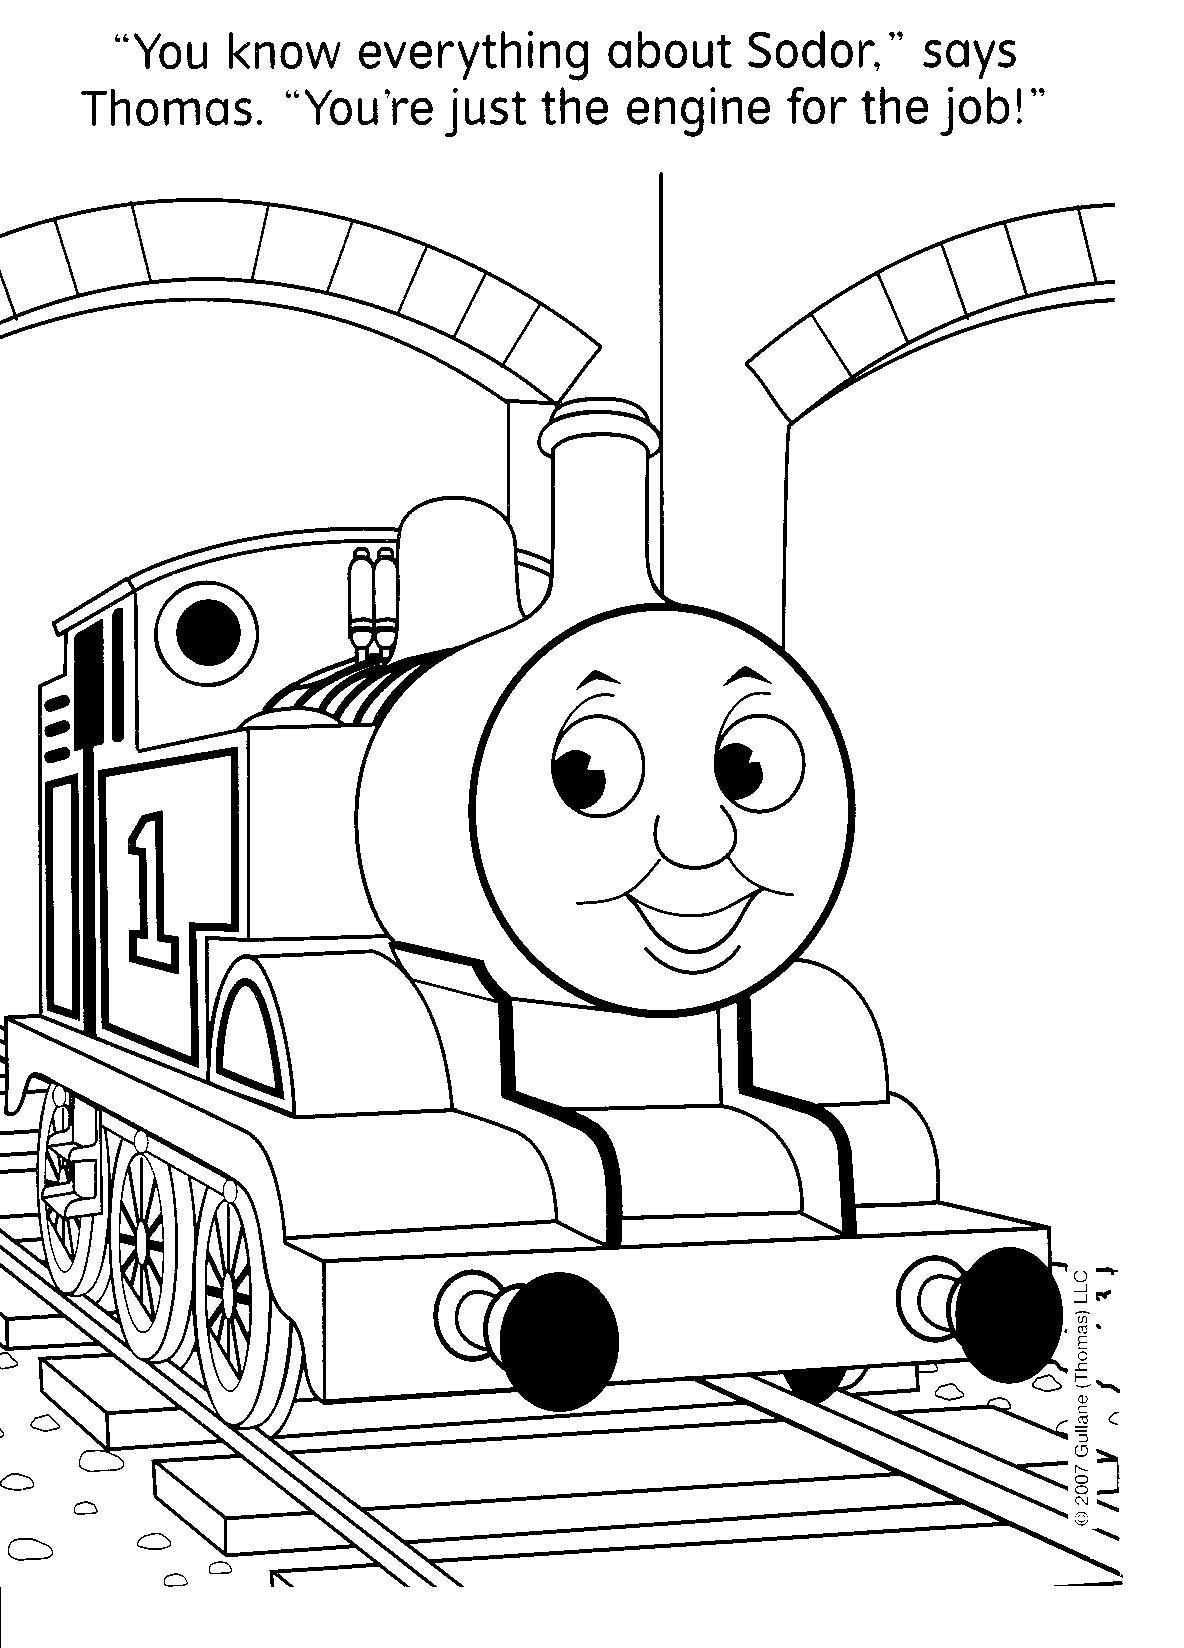 Image Detail For Free Thomas The Train Coloring Pages Could Be Good To Have A Coloring Table For The Older Kids Suzee Co Kleurplaten Thomas De Trein Trein